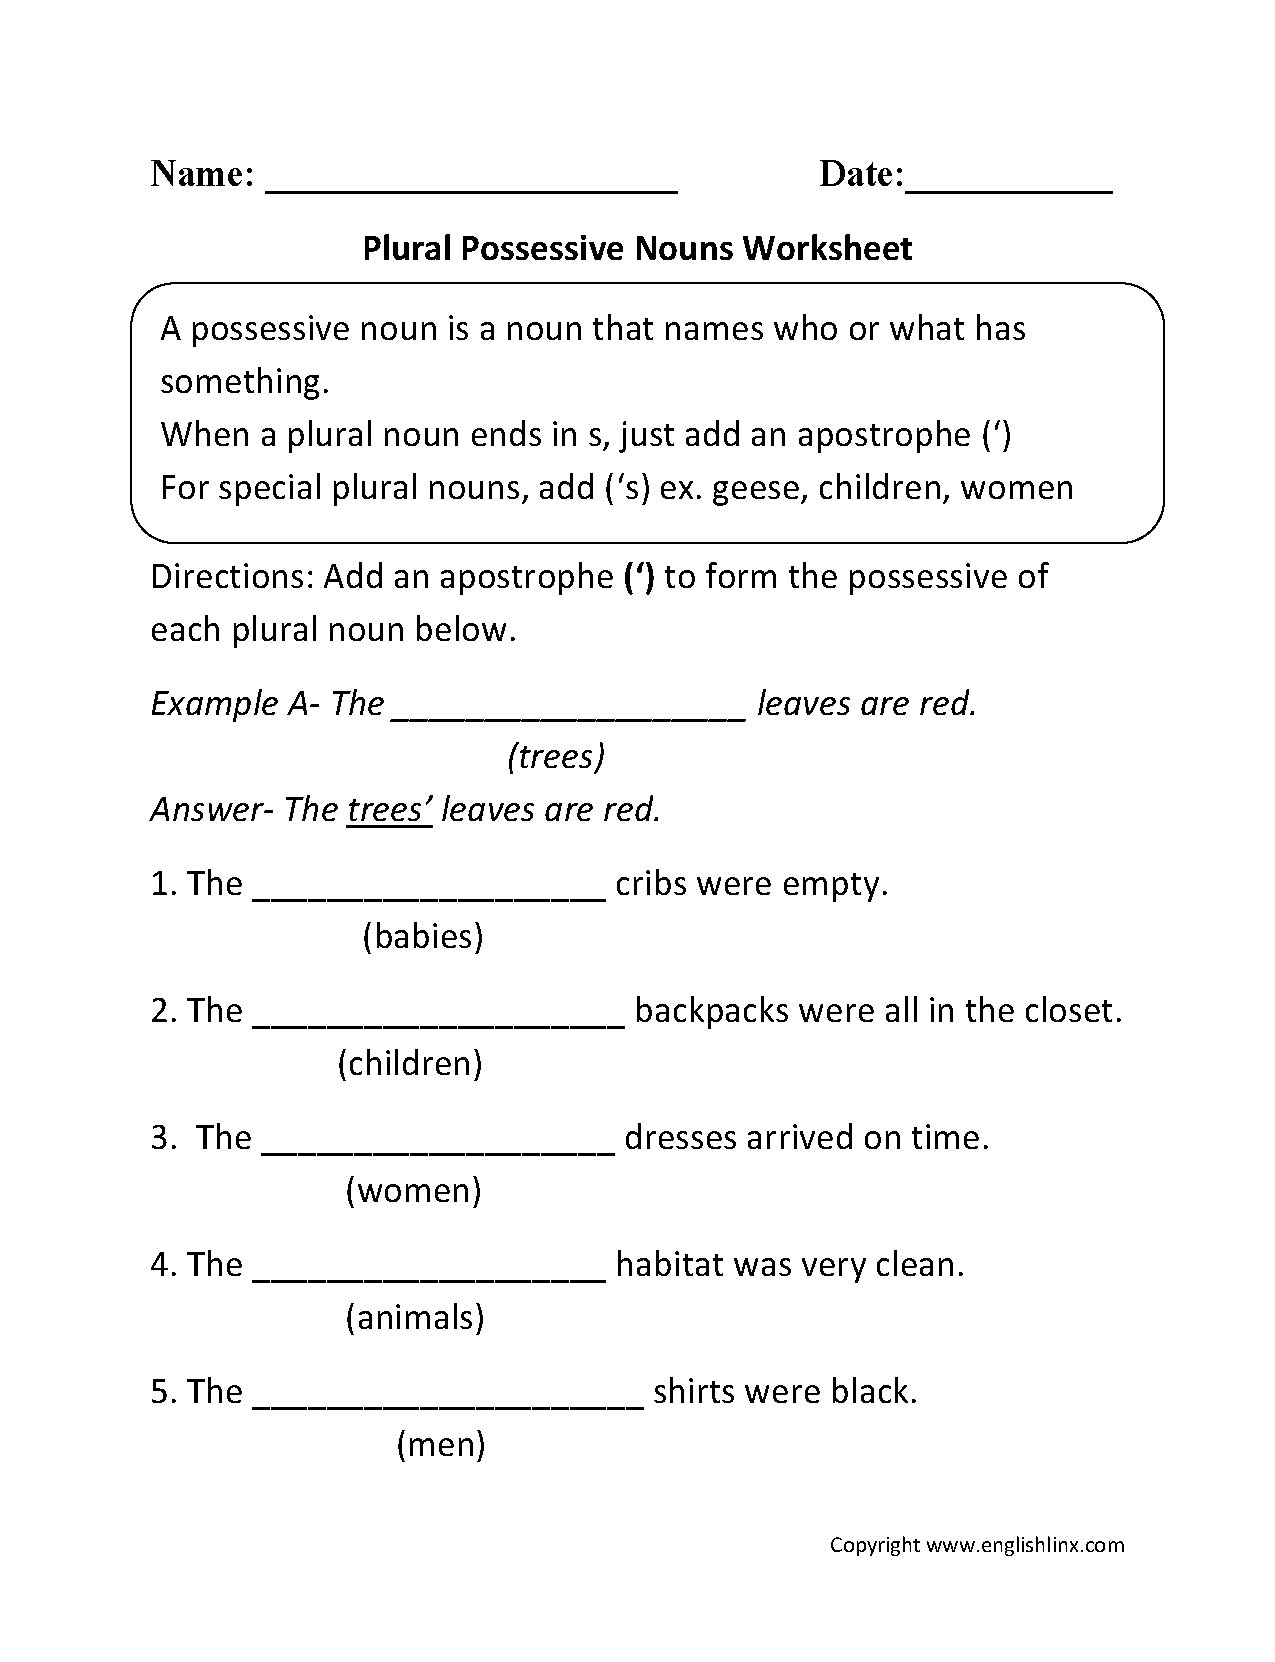 worksheet Noun Worksheets 4th Grade nouns worksheets possessive worksheets